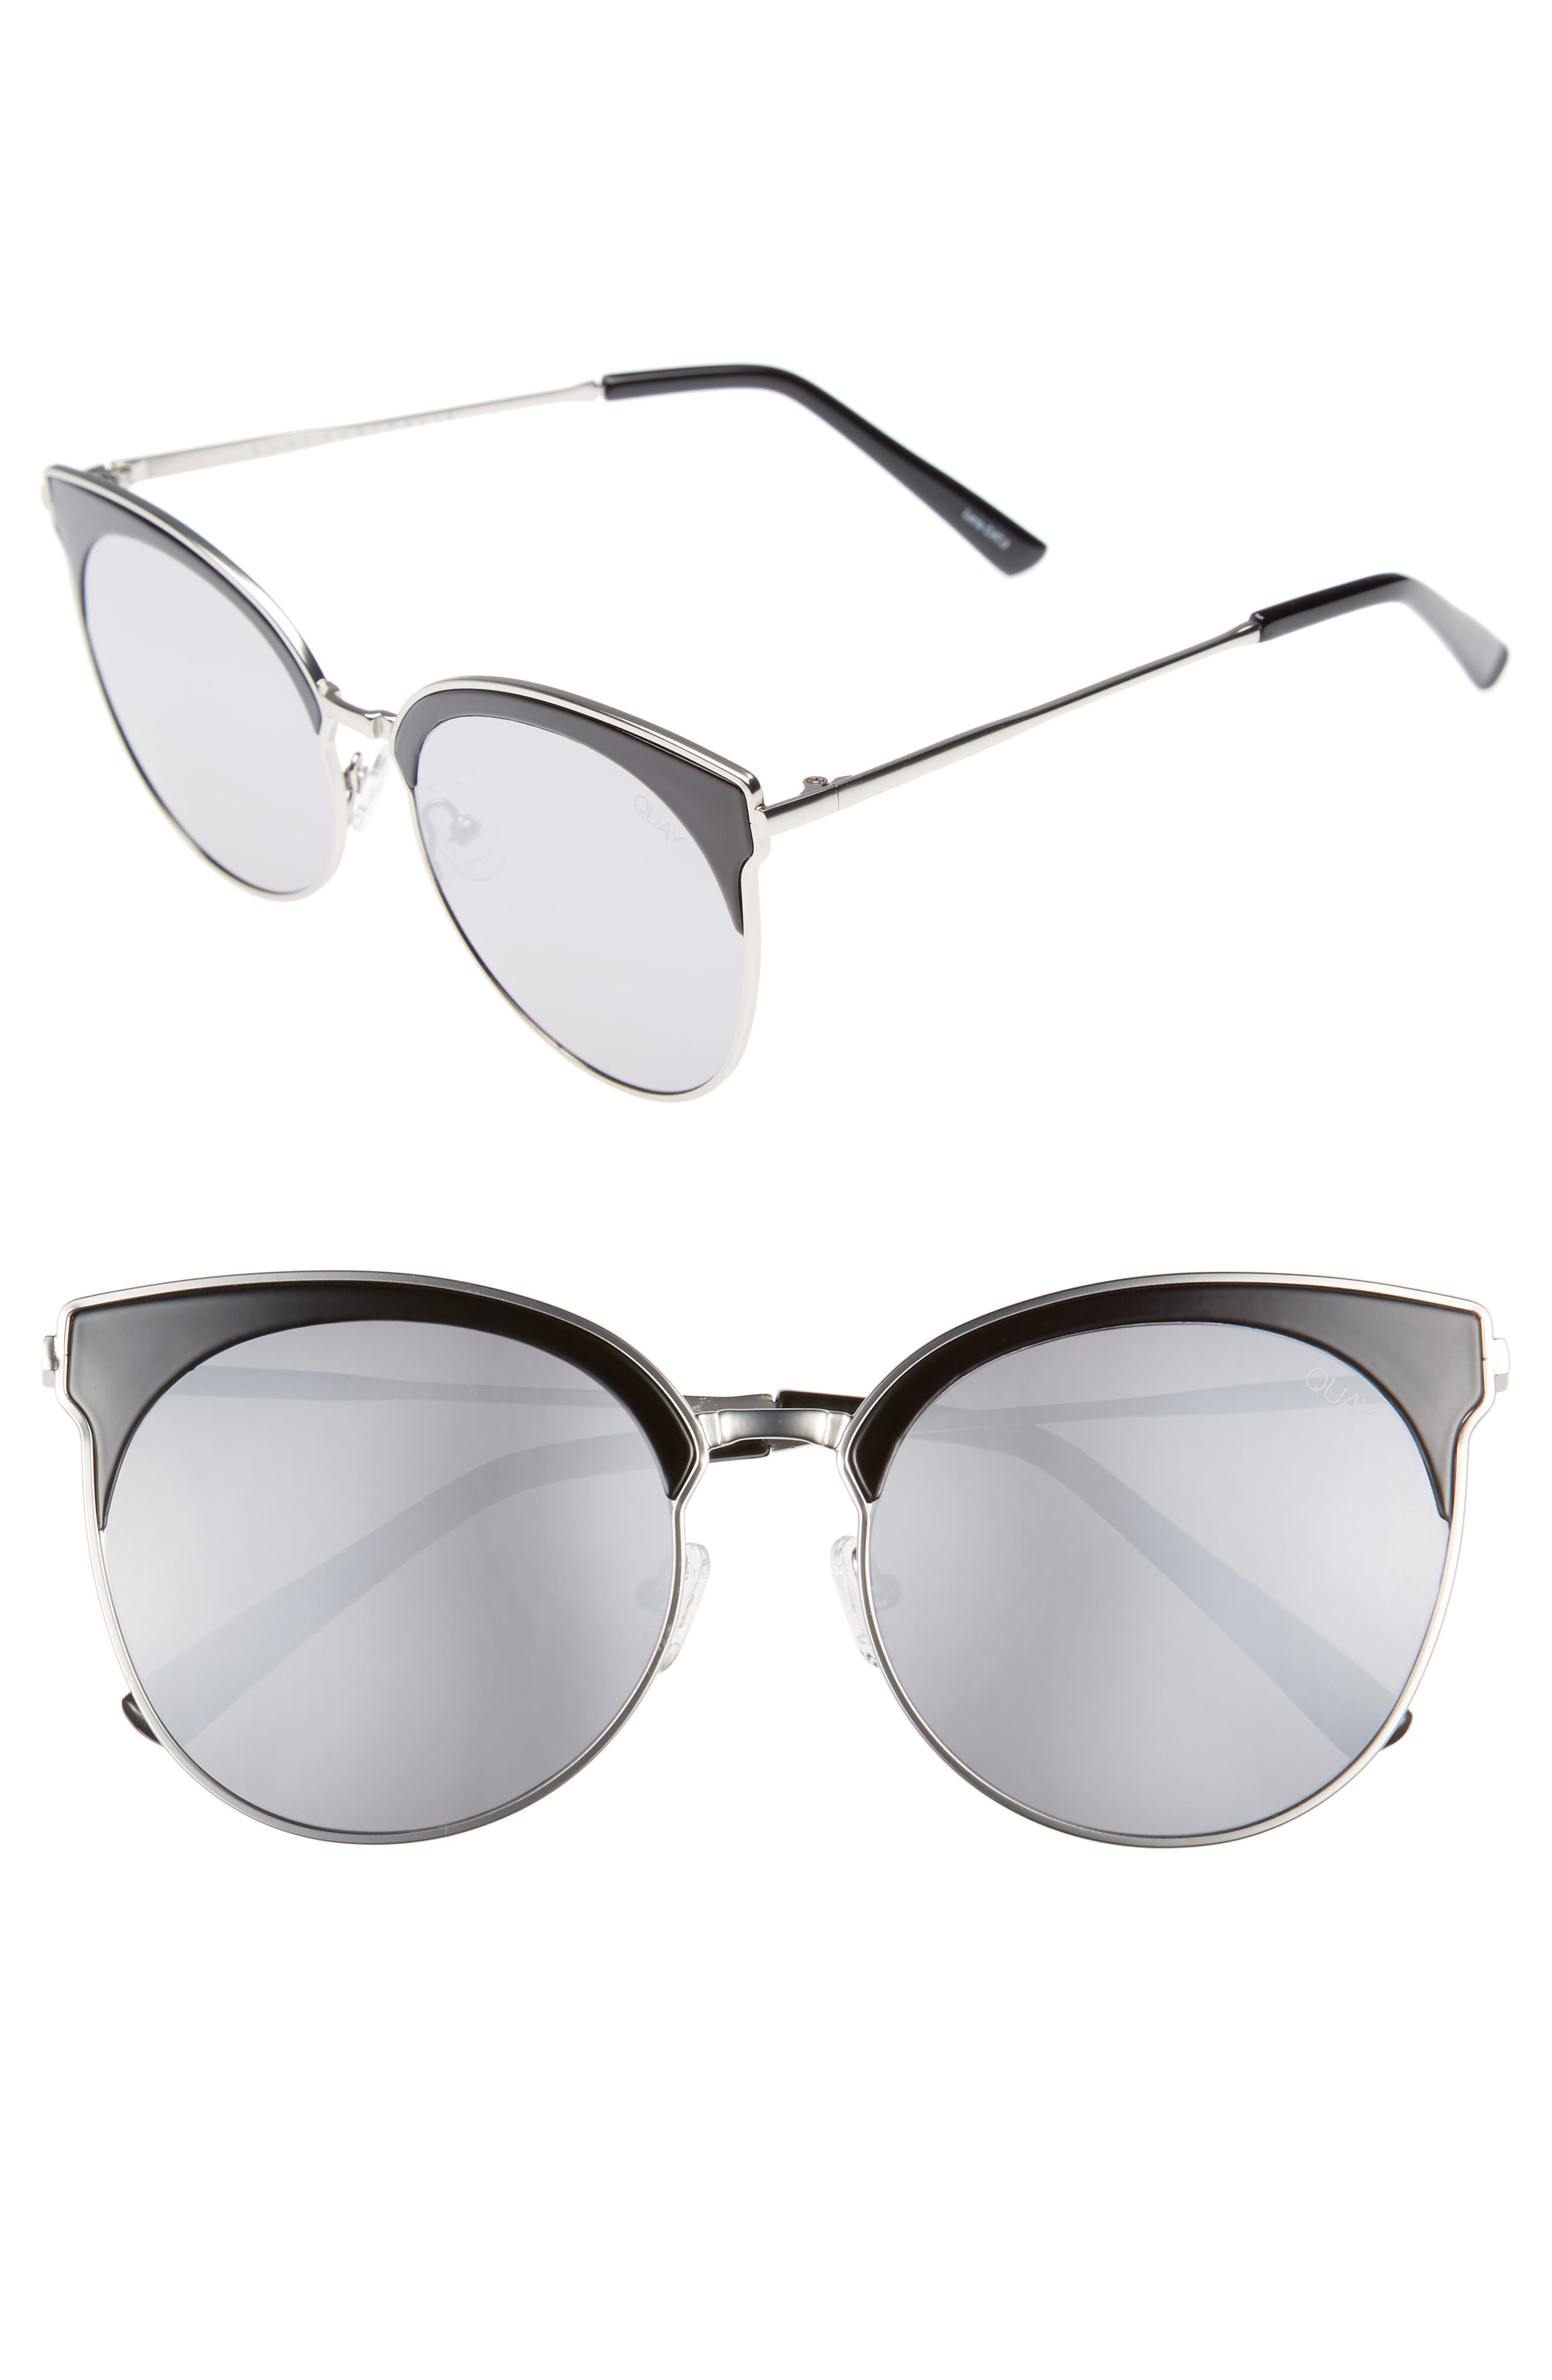 Main Image - Quay Australia Mia Bella 56mm Sunglasses